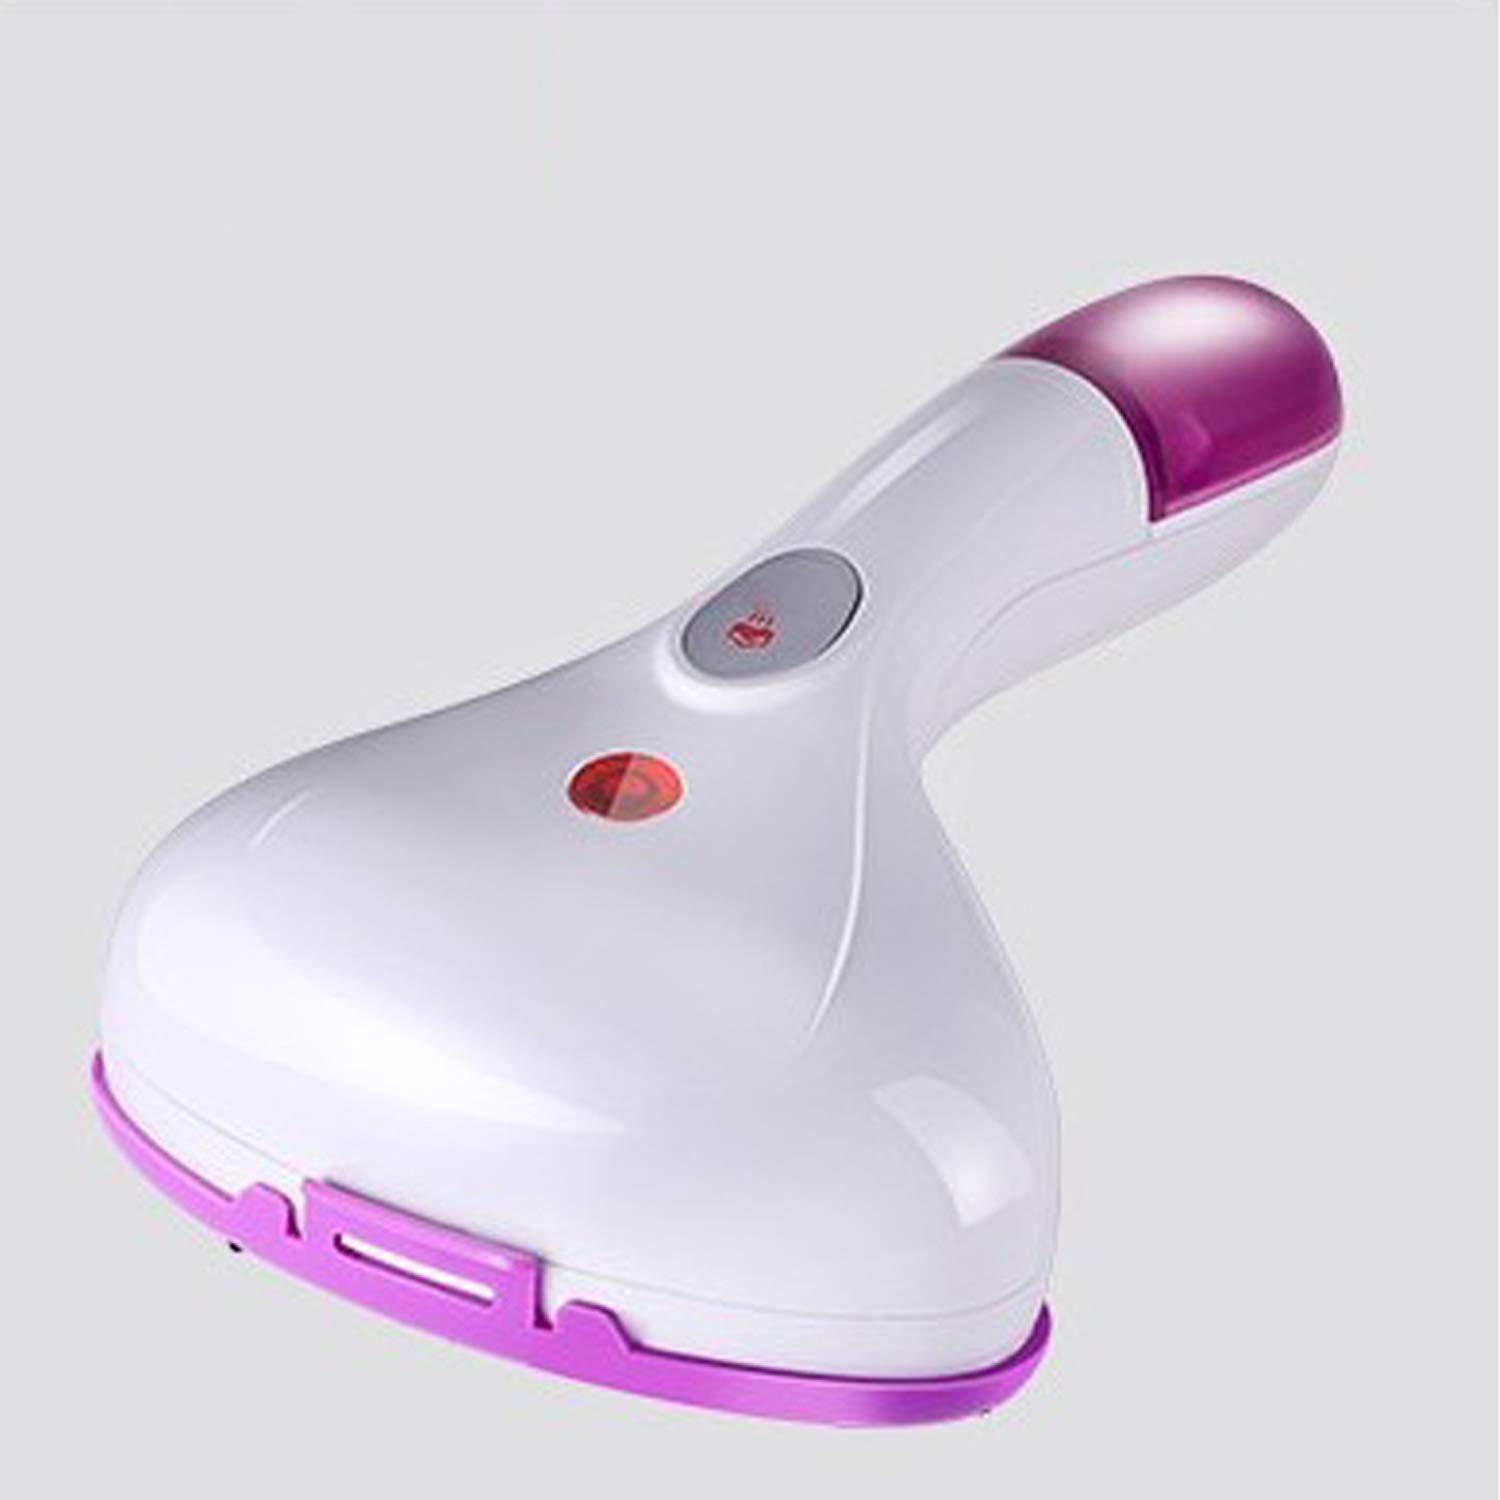 Bearhoho Portable 8 in 1 Garment Steamer for Clothes Powerful Hanging Iron 15s Heat up Handheld Clothes Steamer 100ml Capacity Fabric Steamer for Home and Travelling (White)